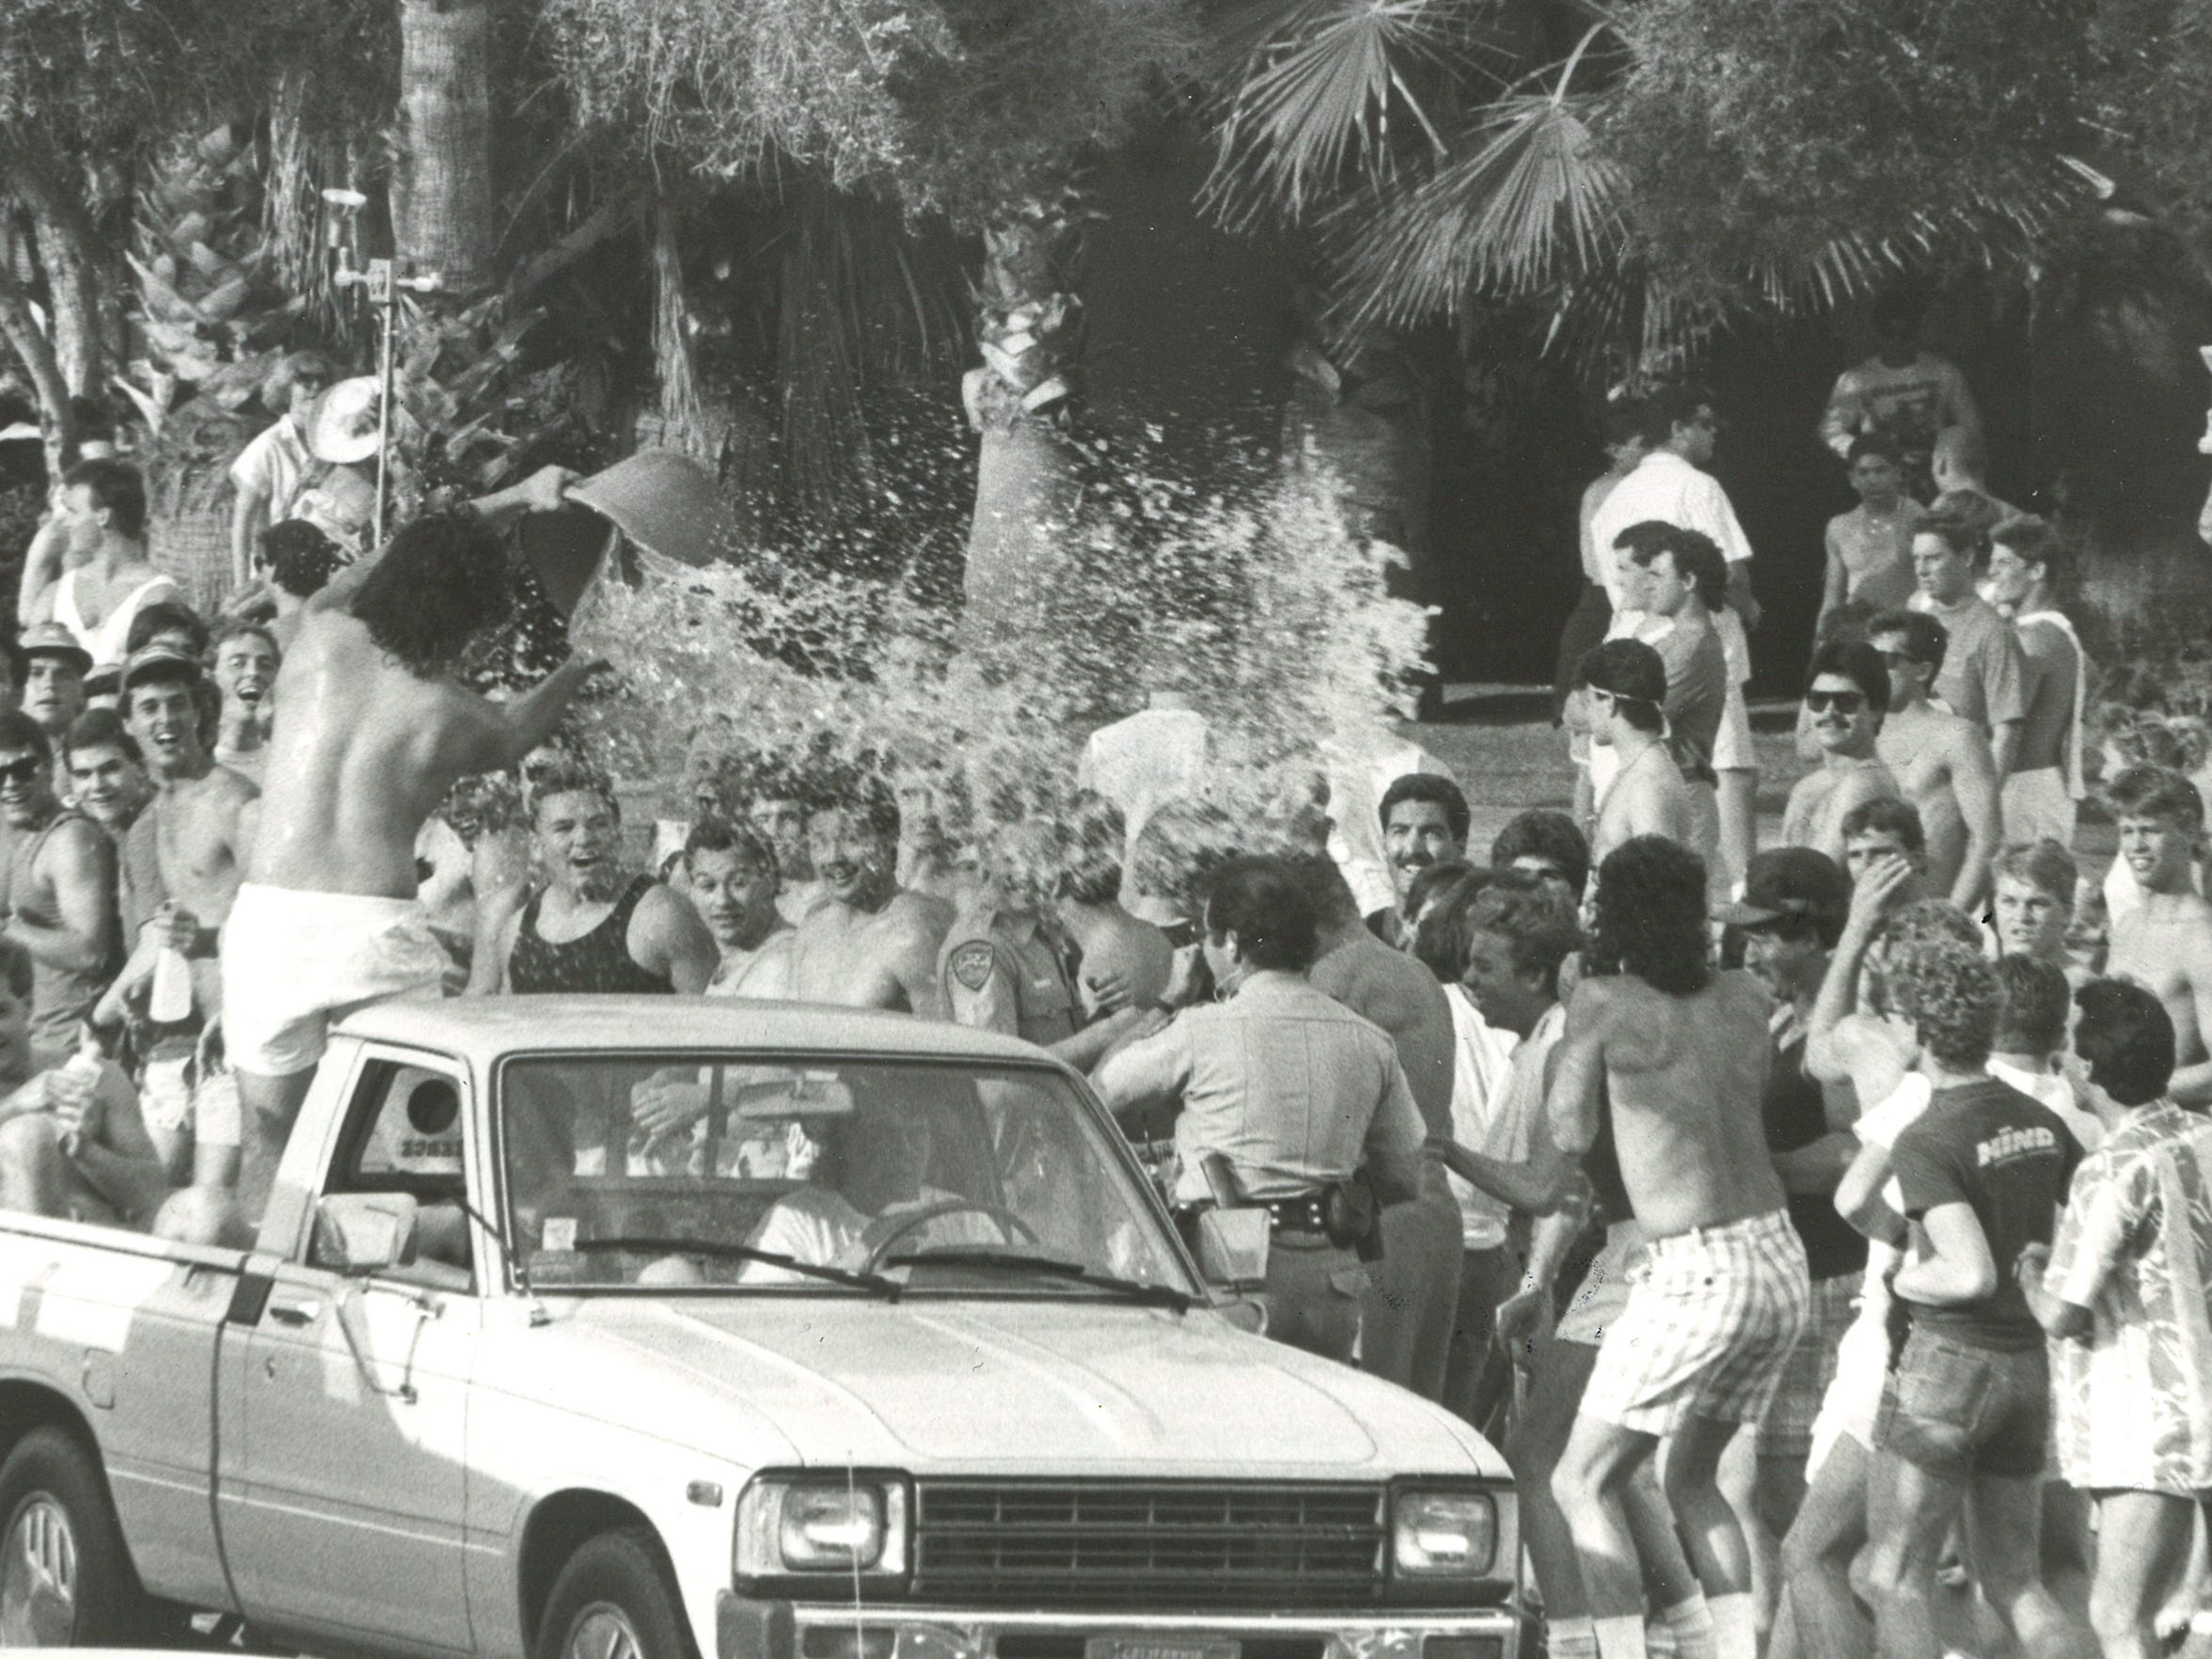 A spring breaker dumps water on police officers in Palm Springs in 1986.